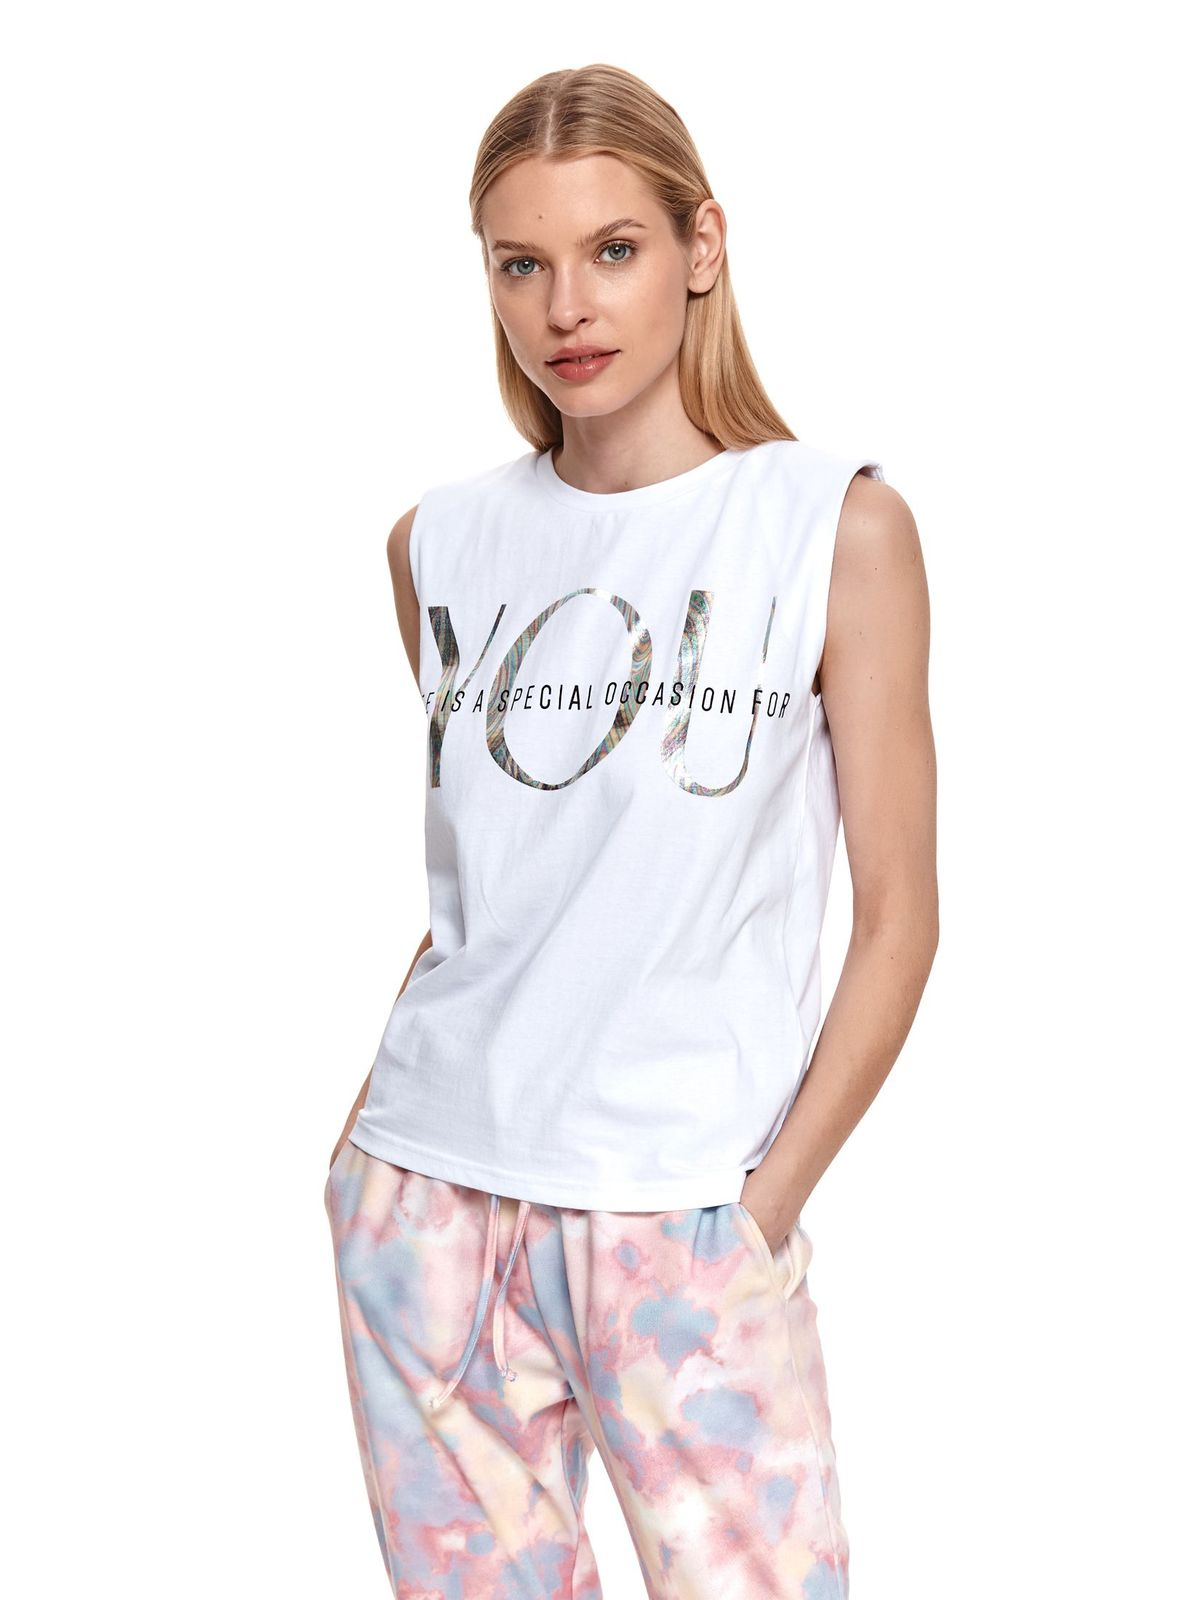 White top shirt sleeveless cotton with graphic details